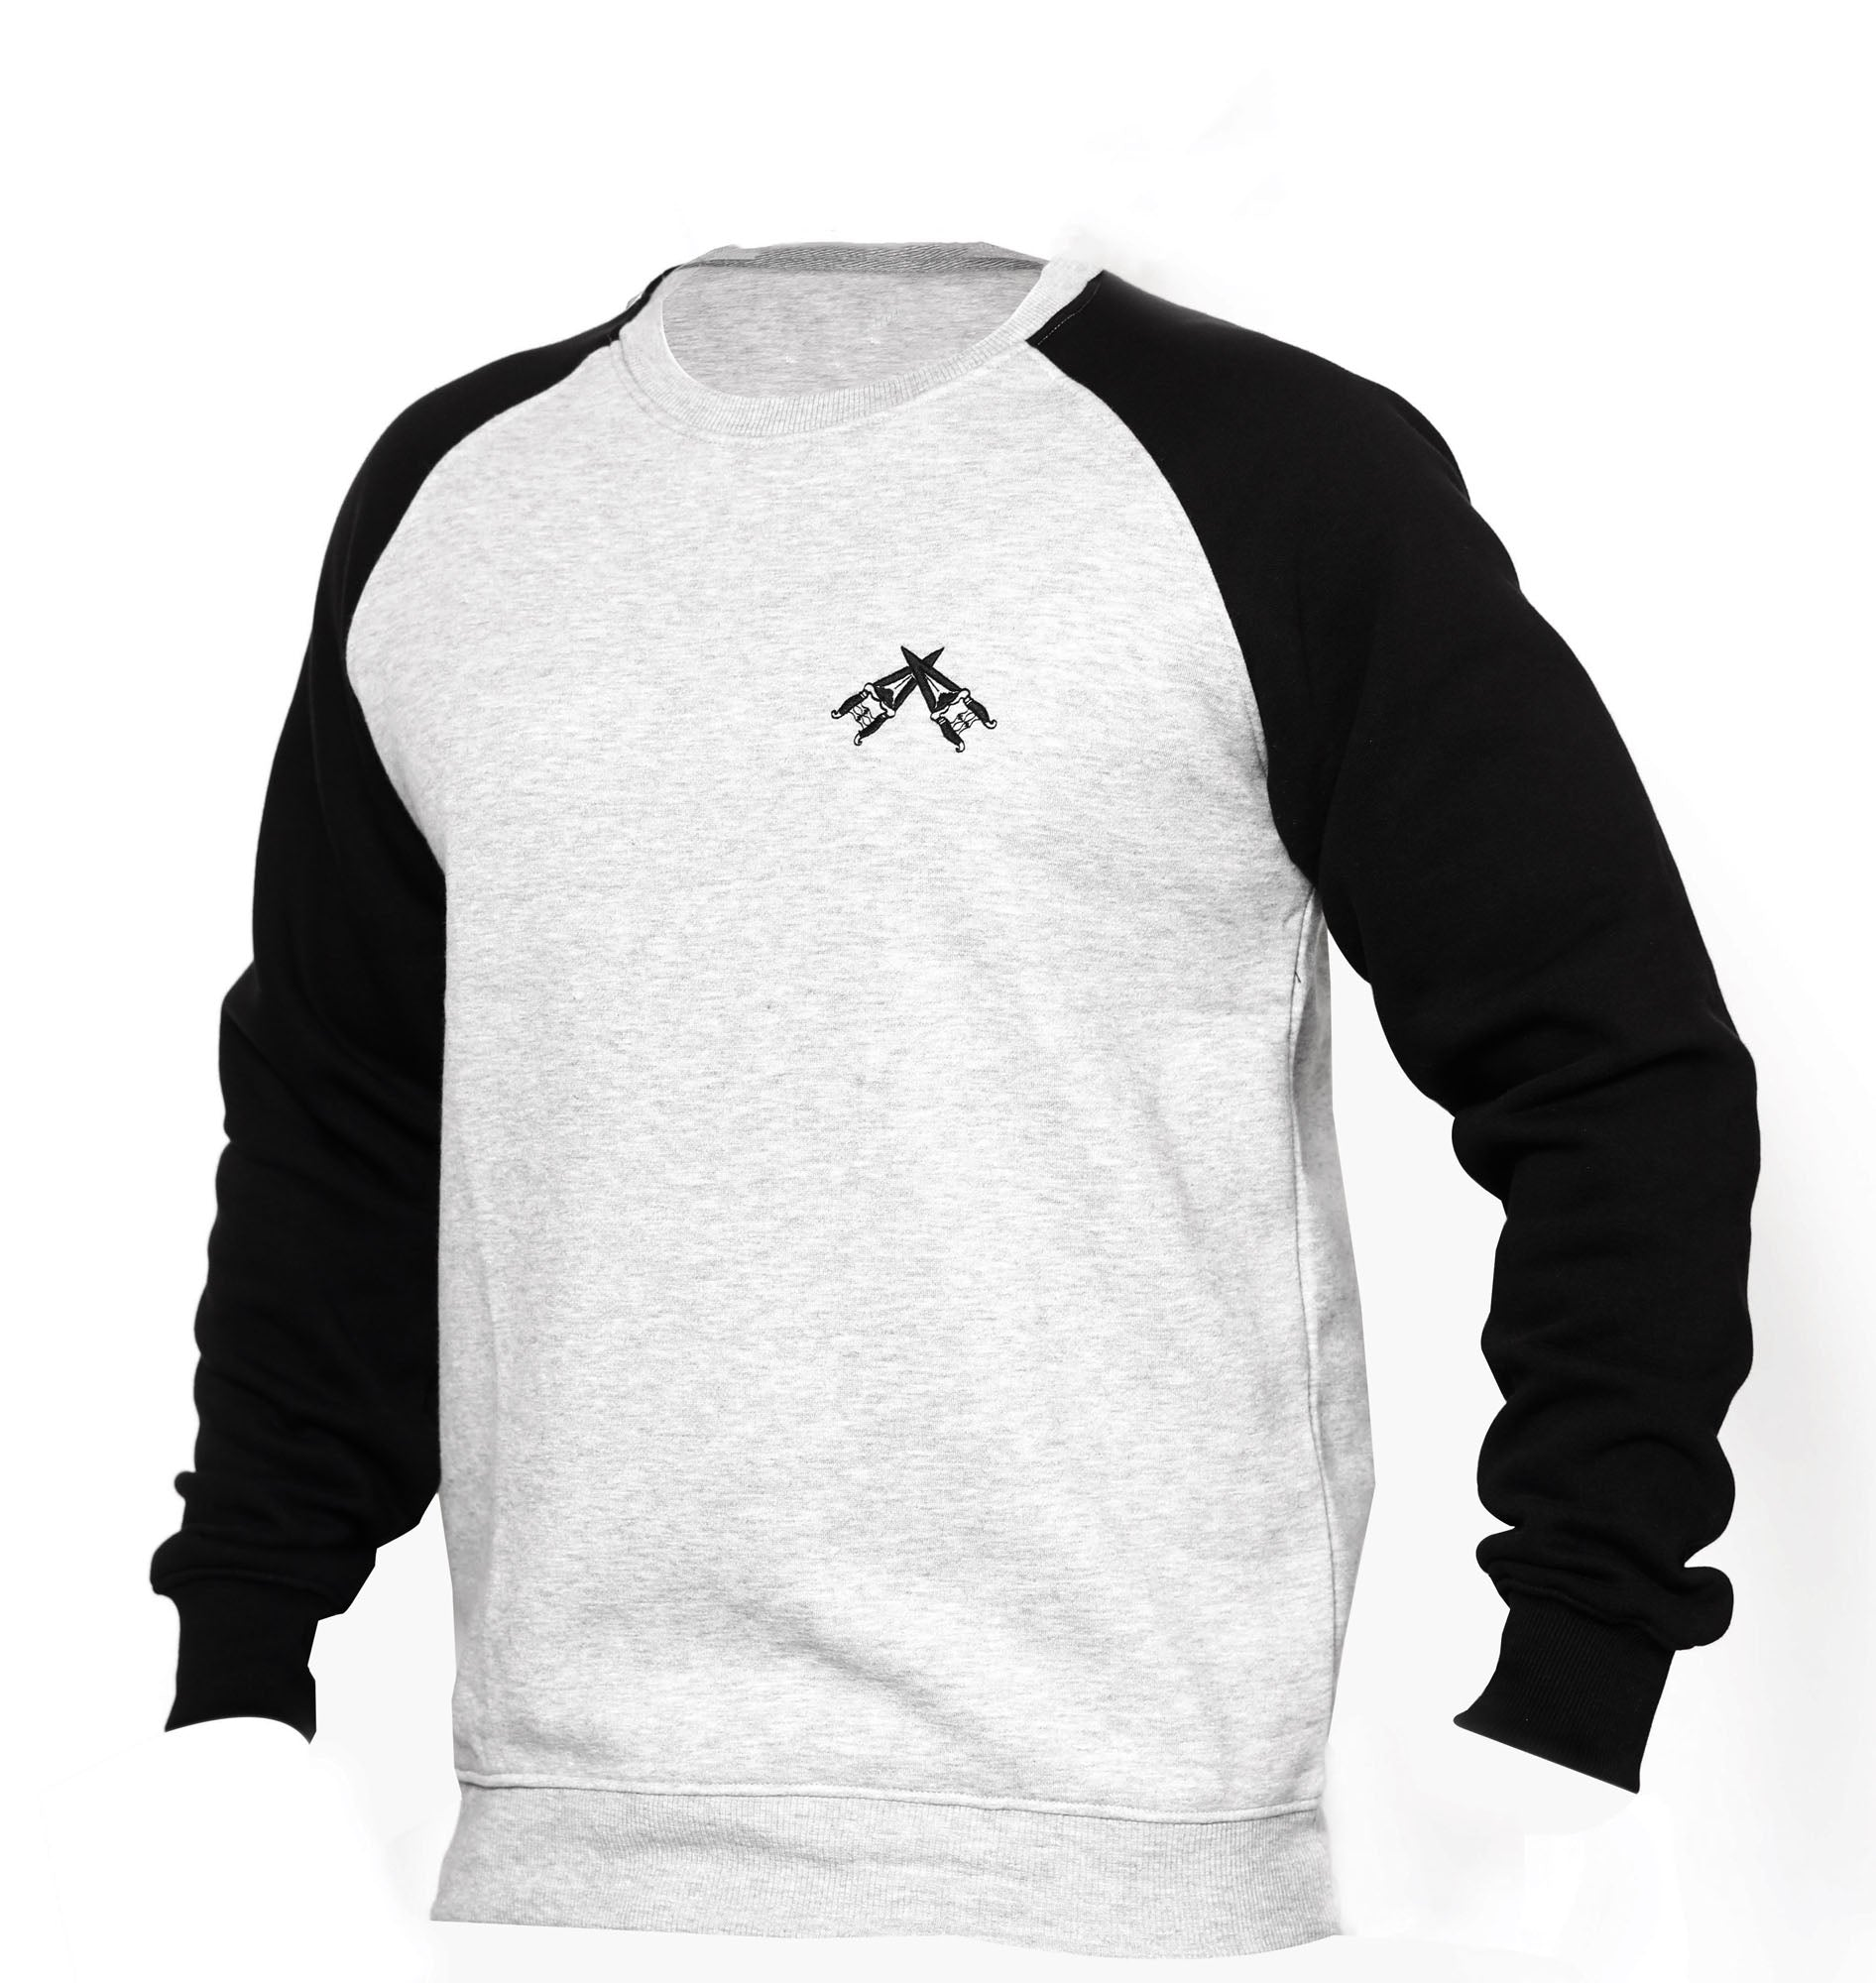 Grey & Black Sweatshirt